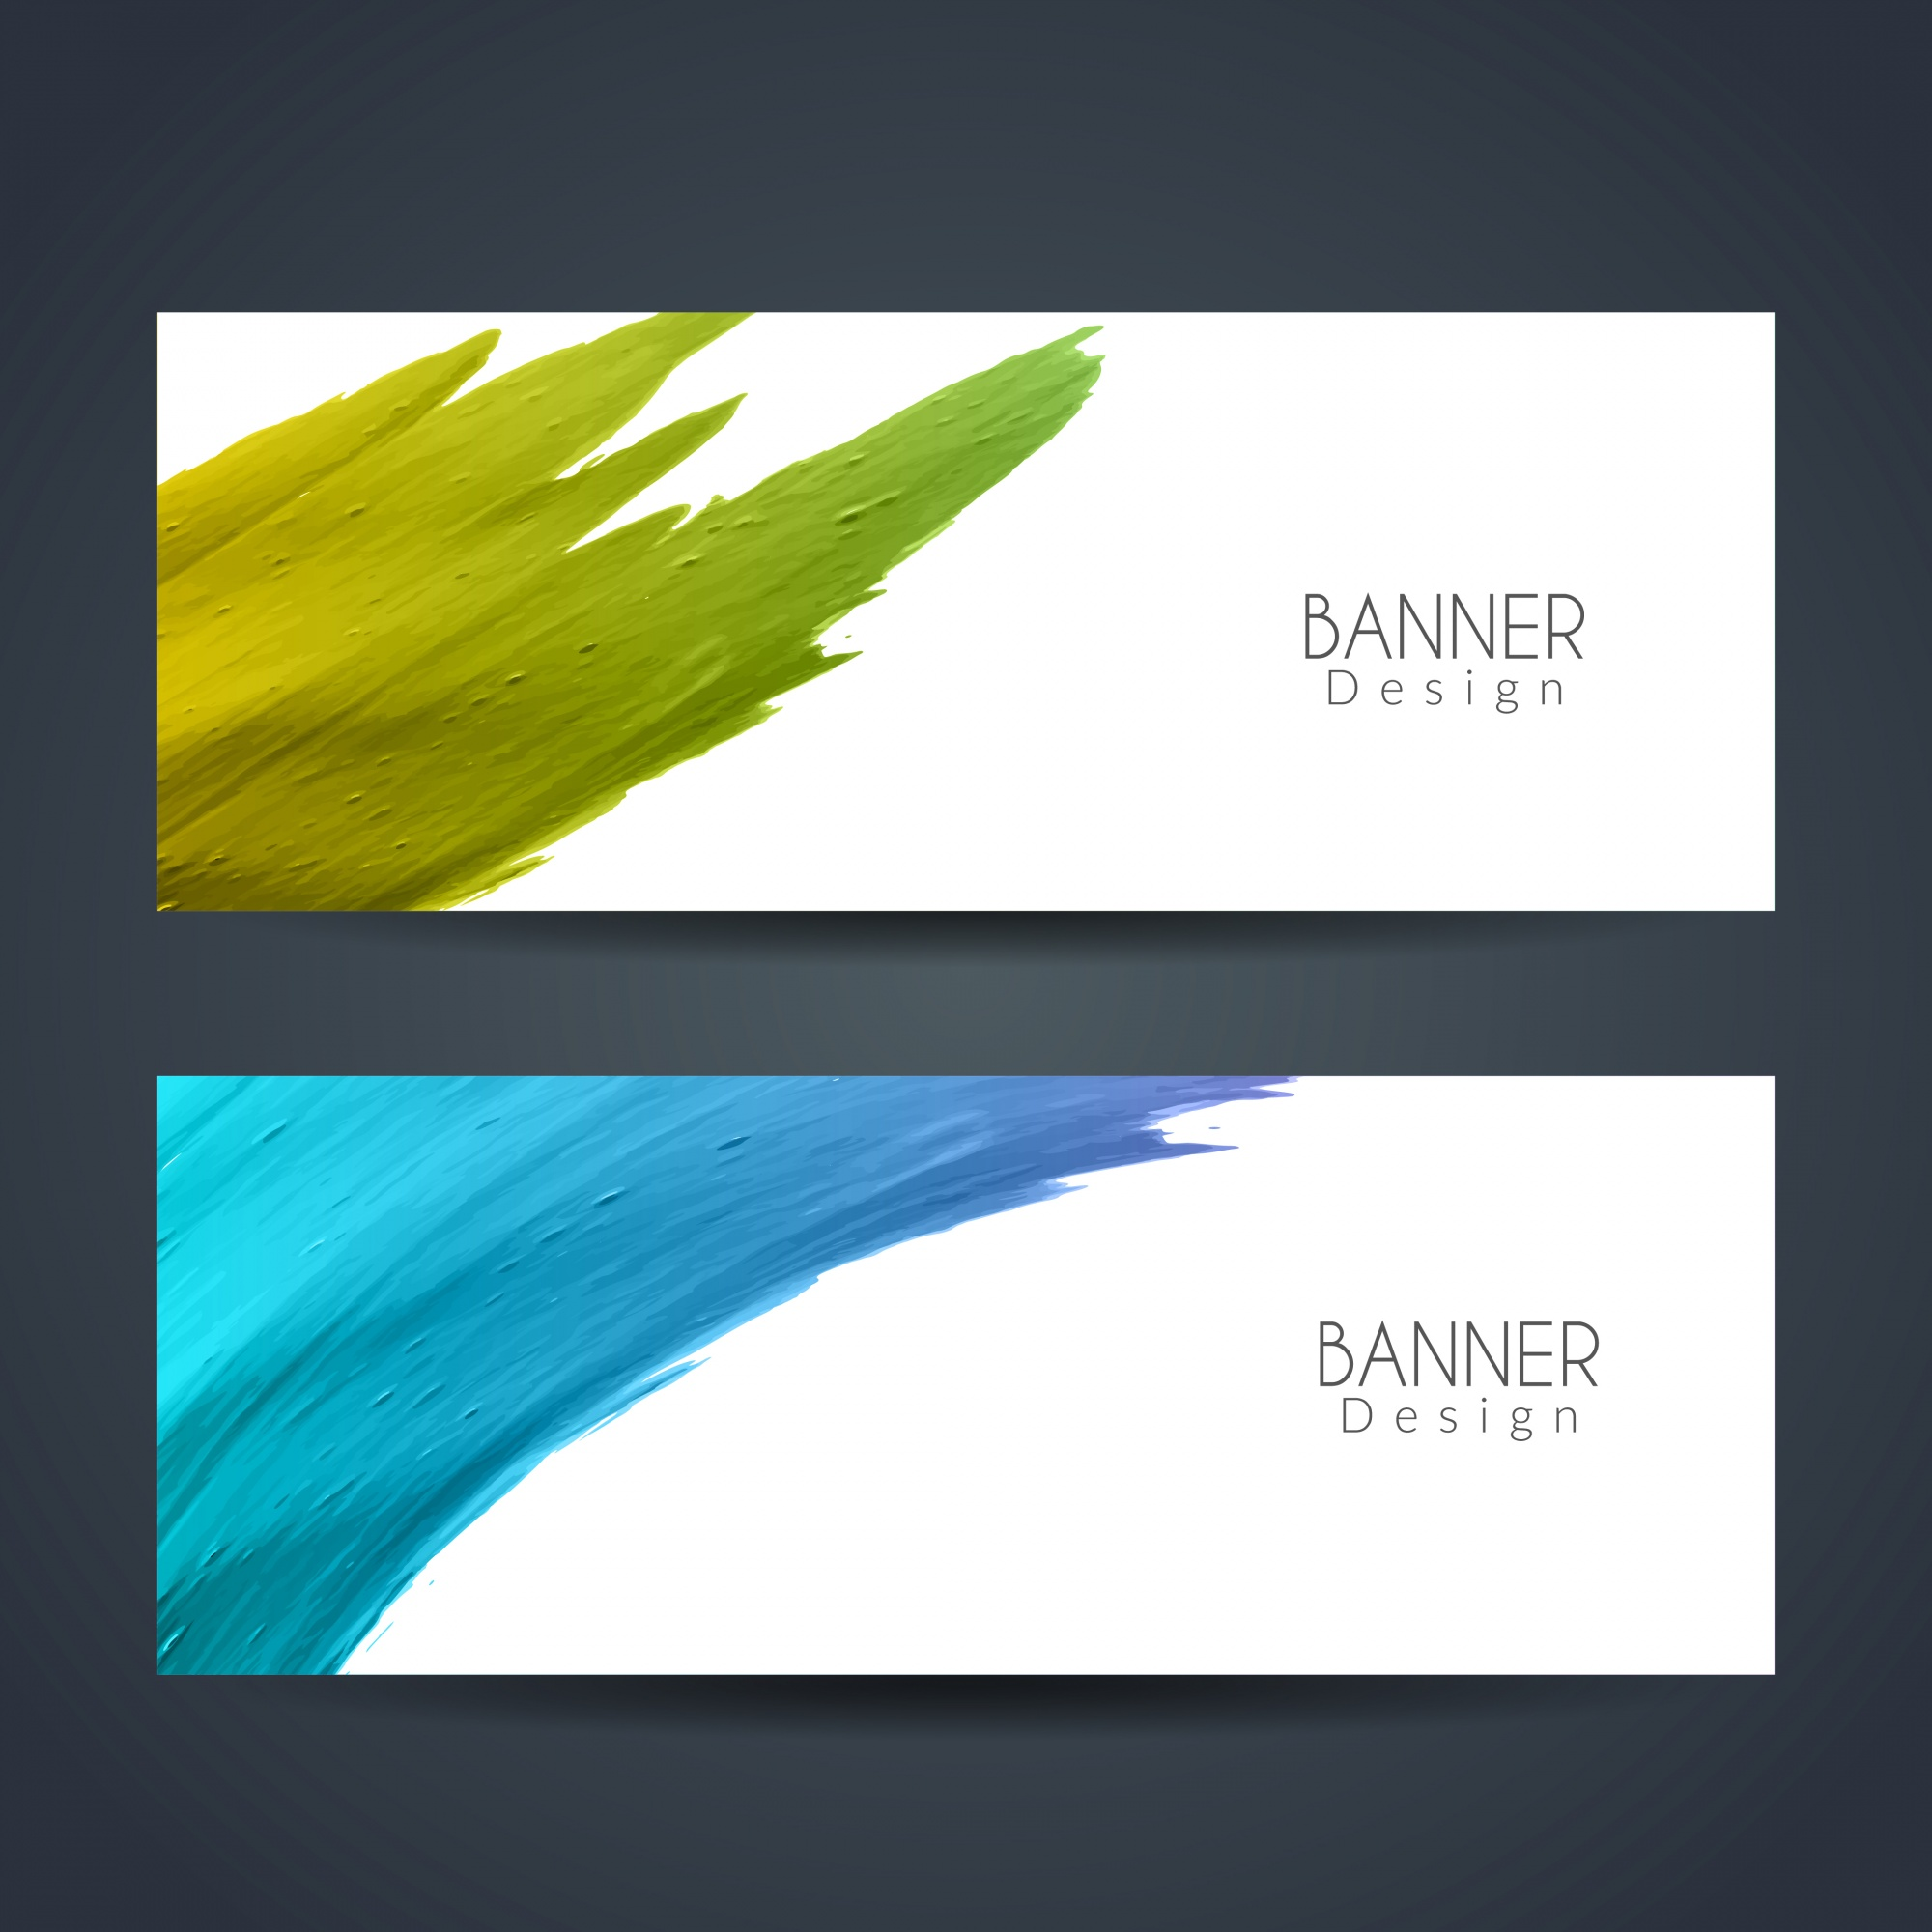 Two abstract banners with watercolor stains